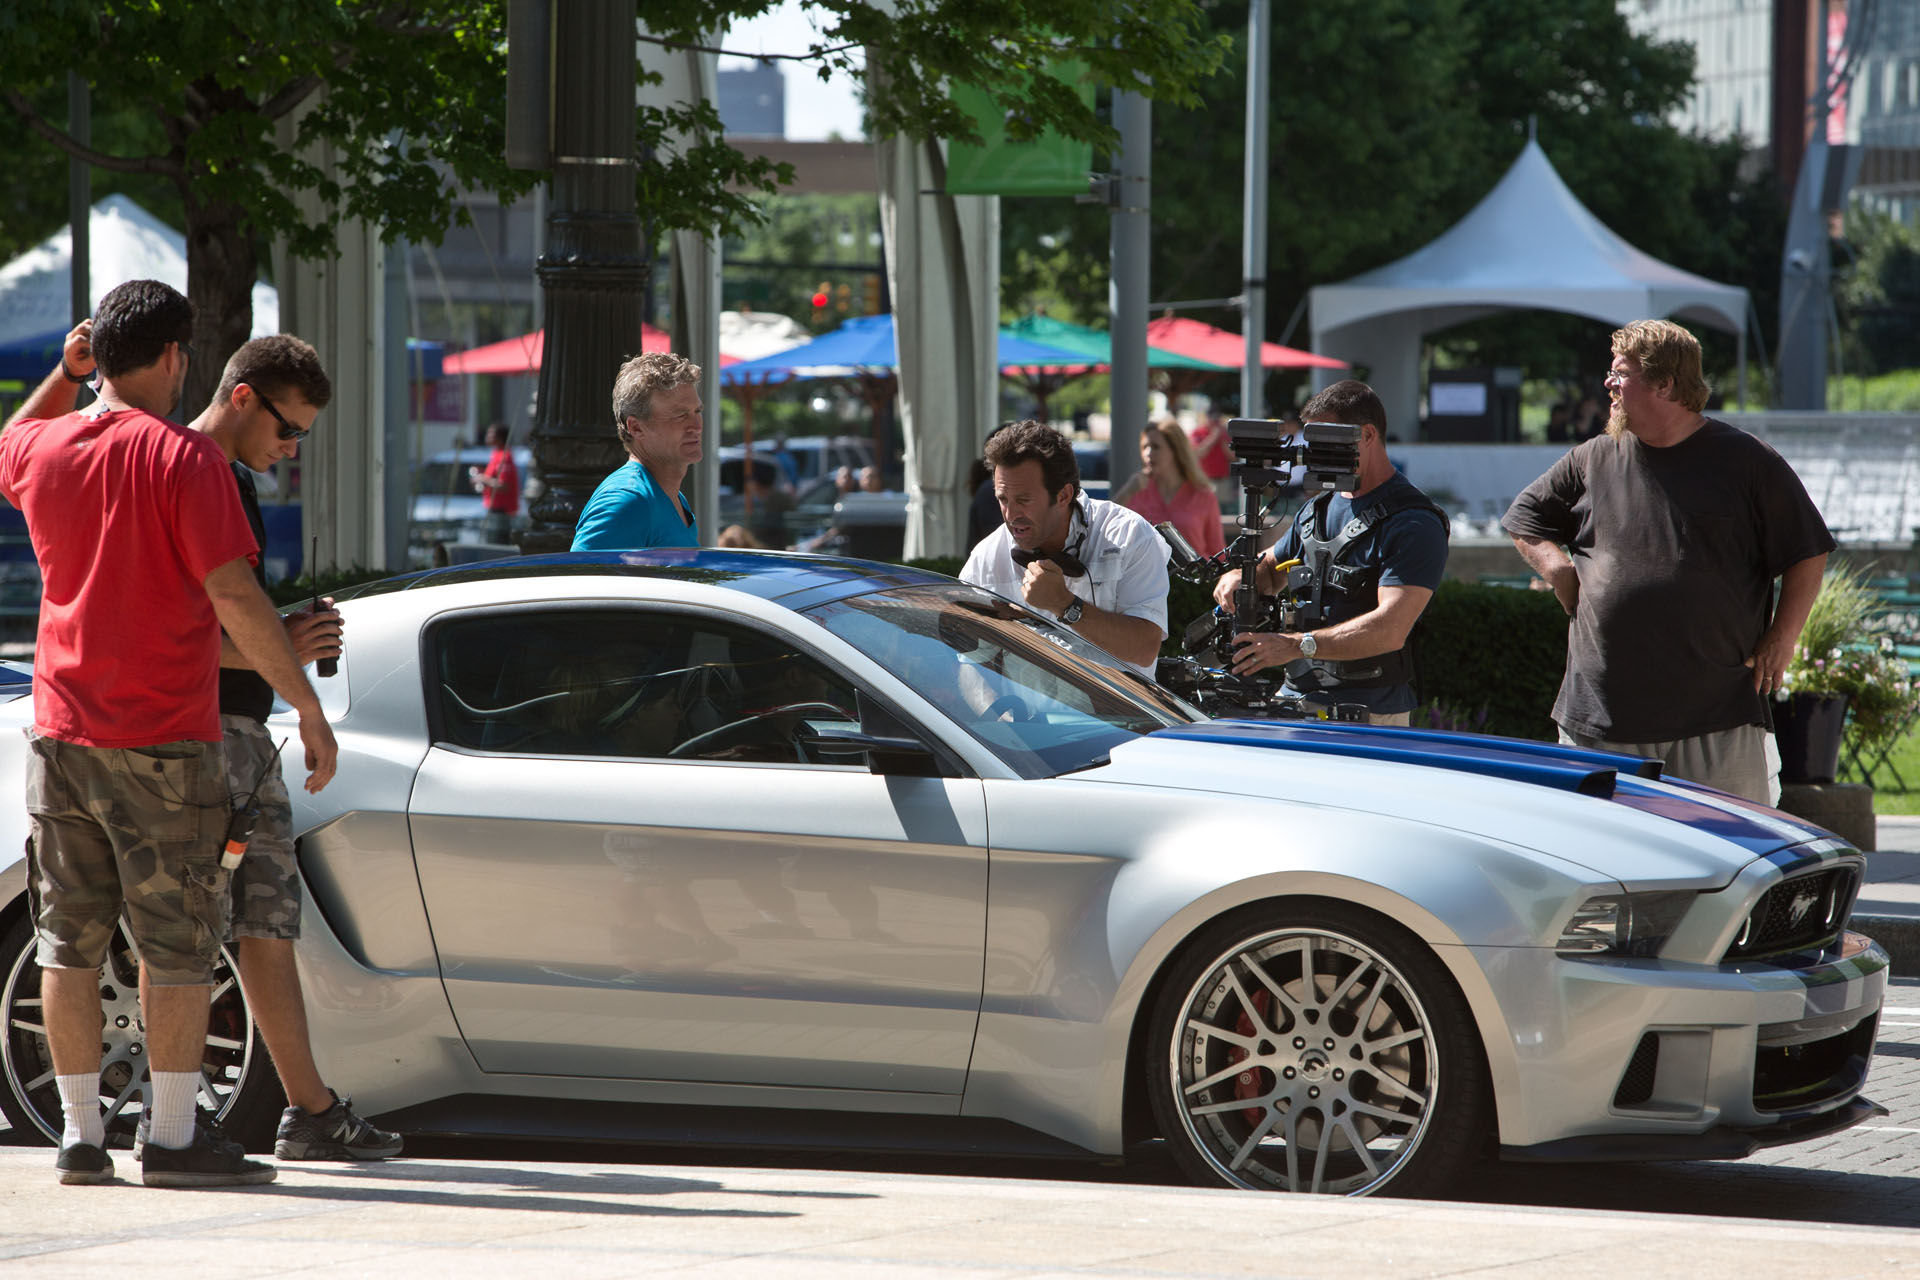 Need For Speed Official Set Photo Downtown Detroit Michigan Mustang NEED FOR SPEED Set Visit Photo   Hero Mustang